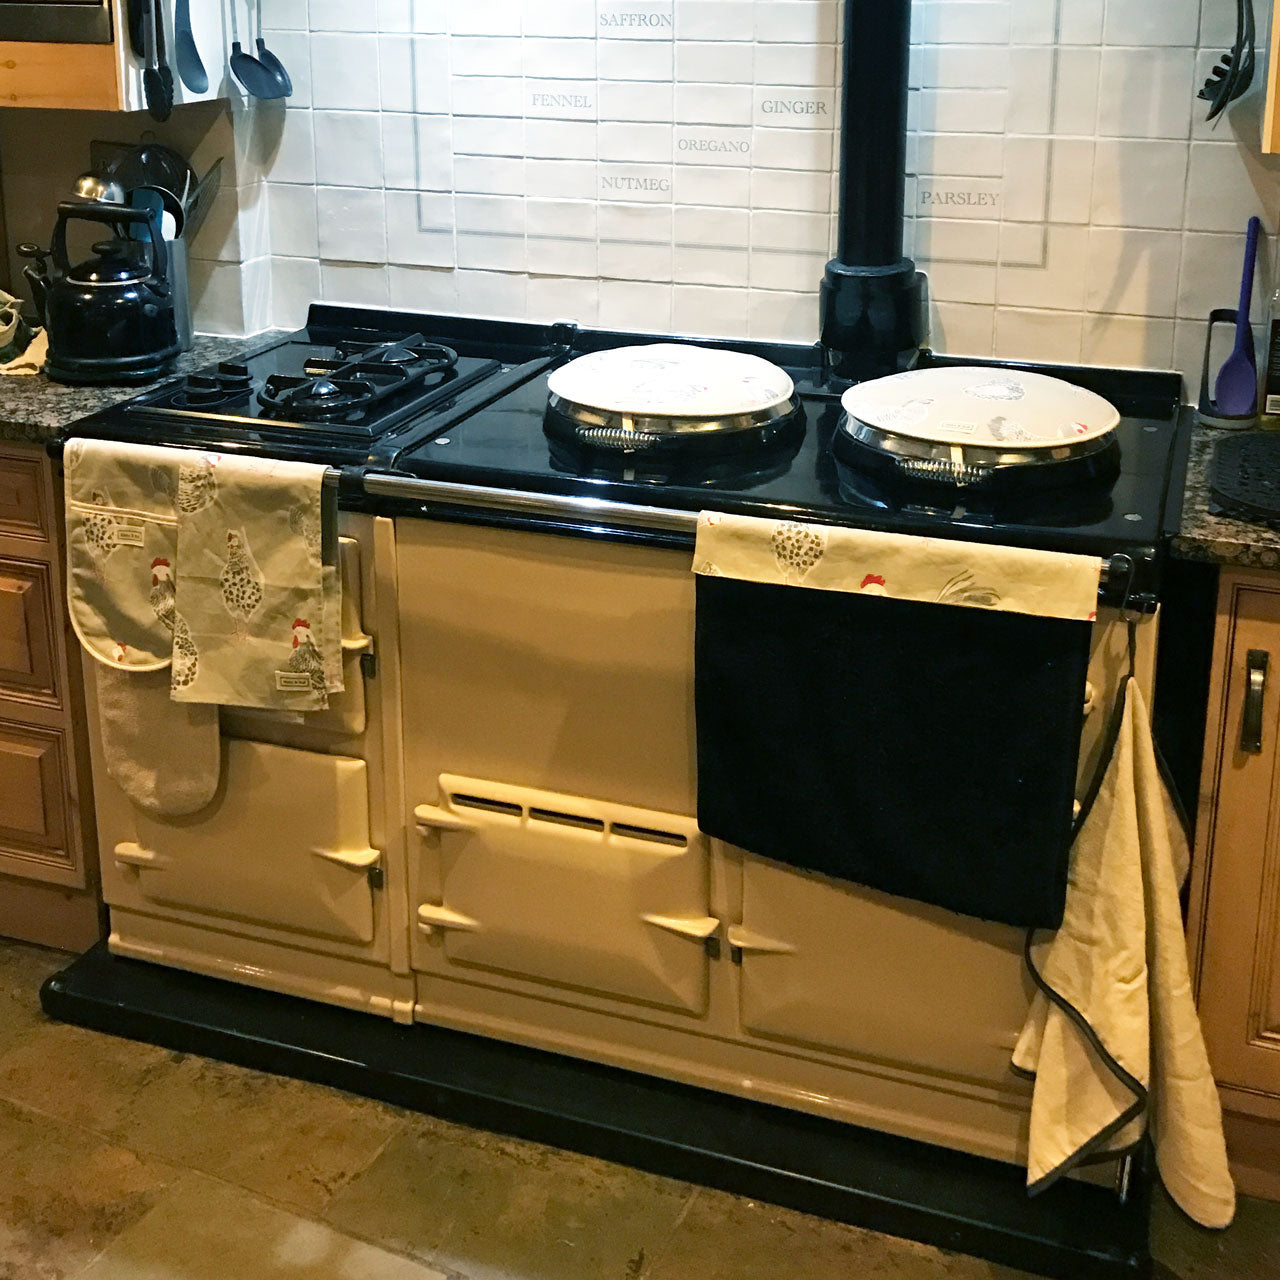 Chicken hob cover textiles on cream Aga range cooker